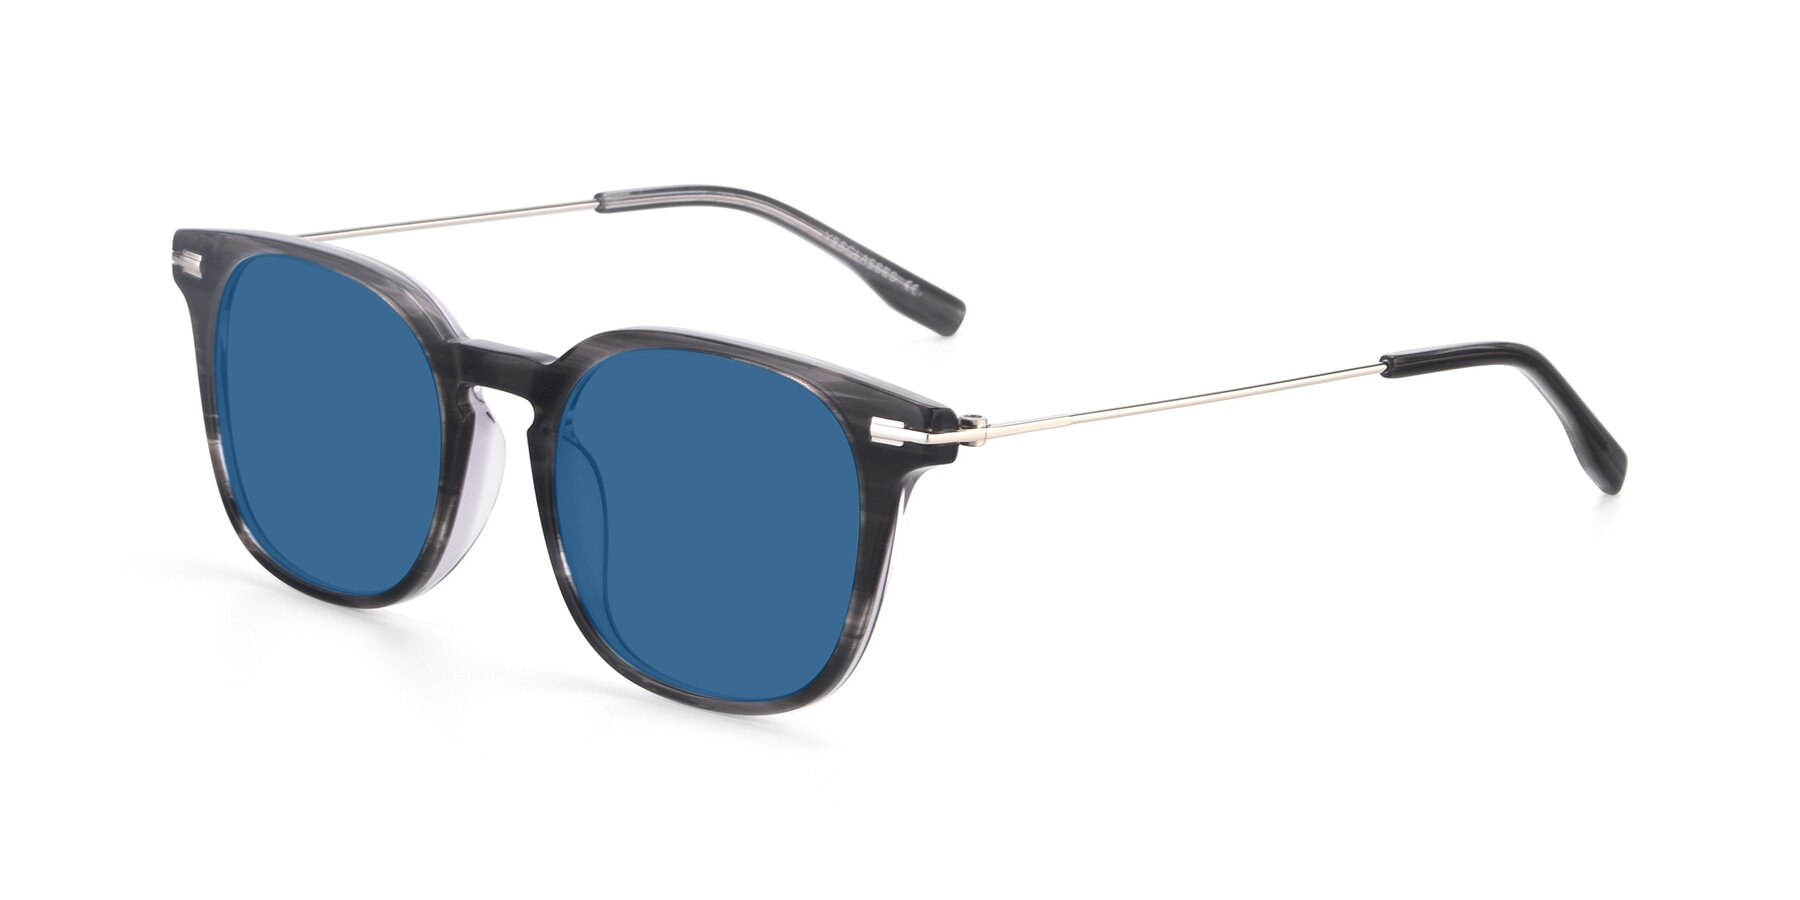 Angle of 17711 in Grey with Blue Tinted Lenses